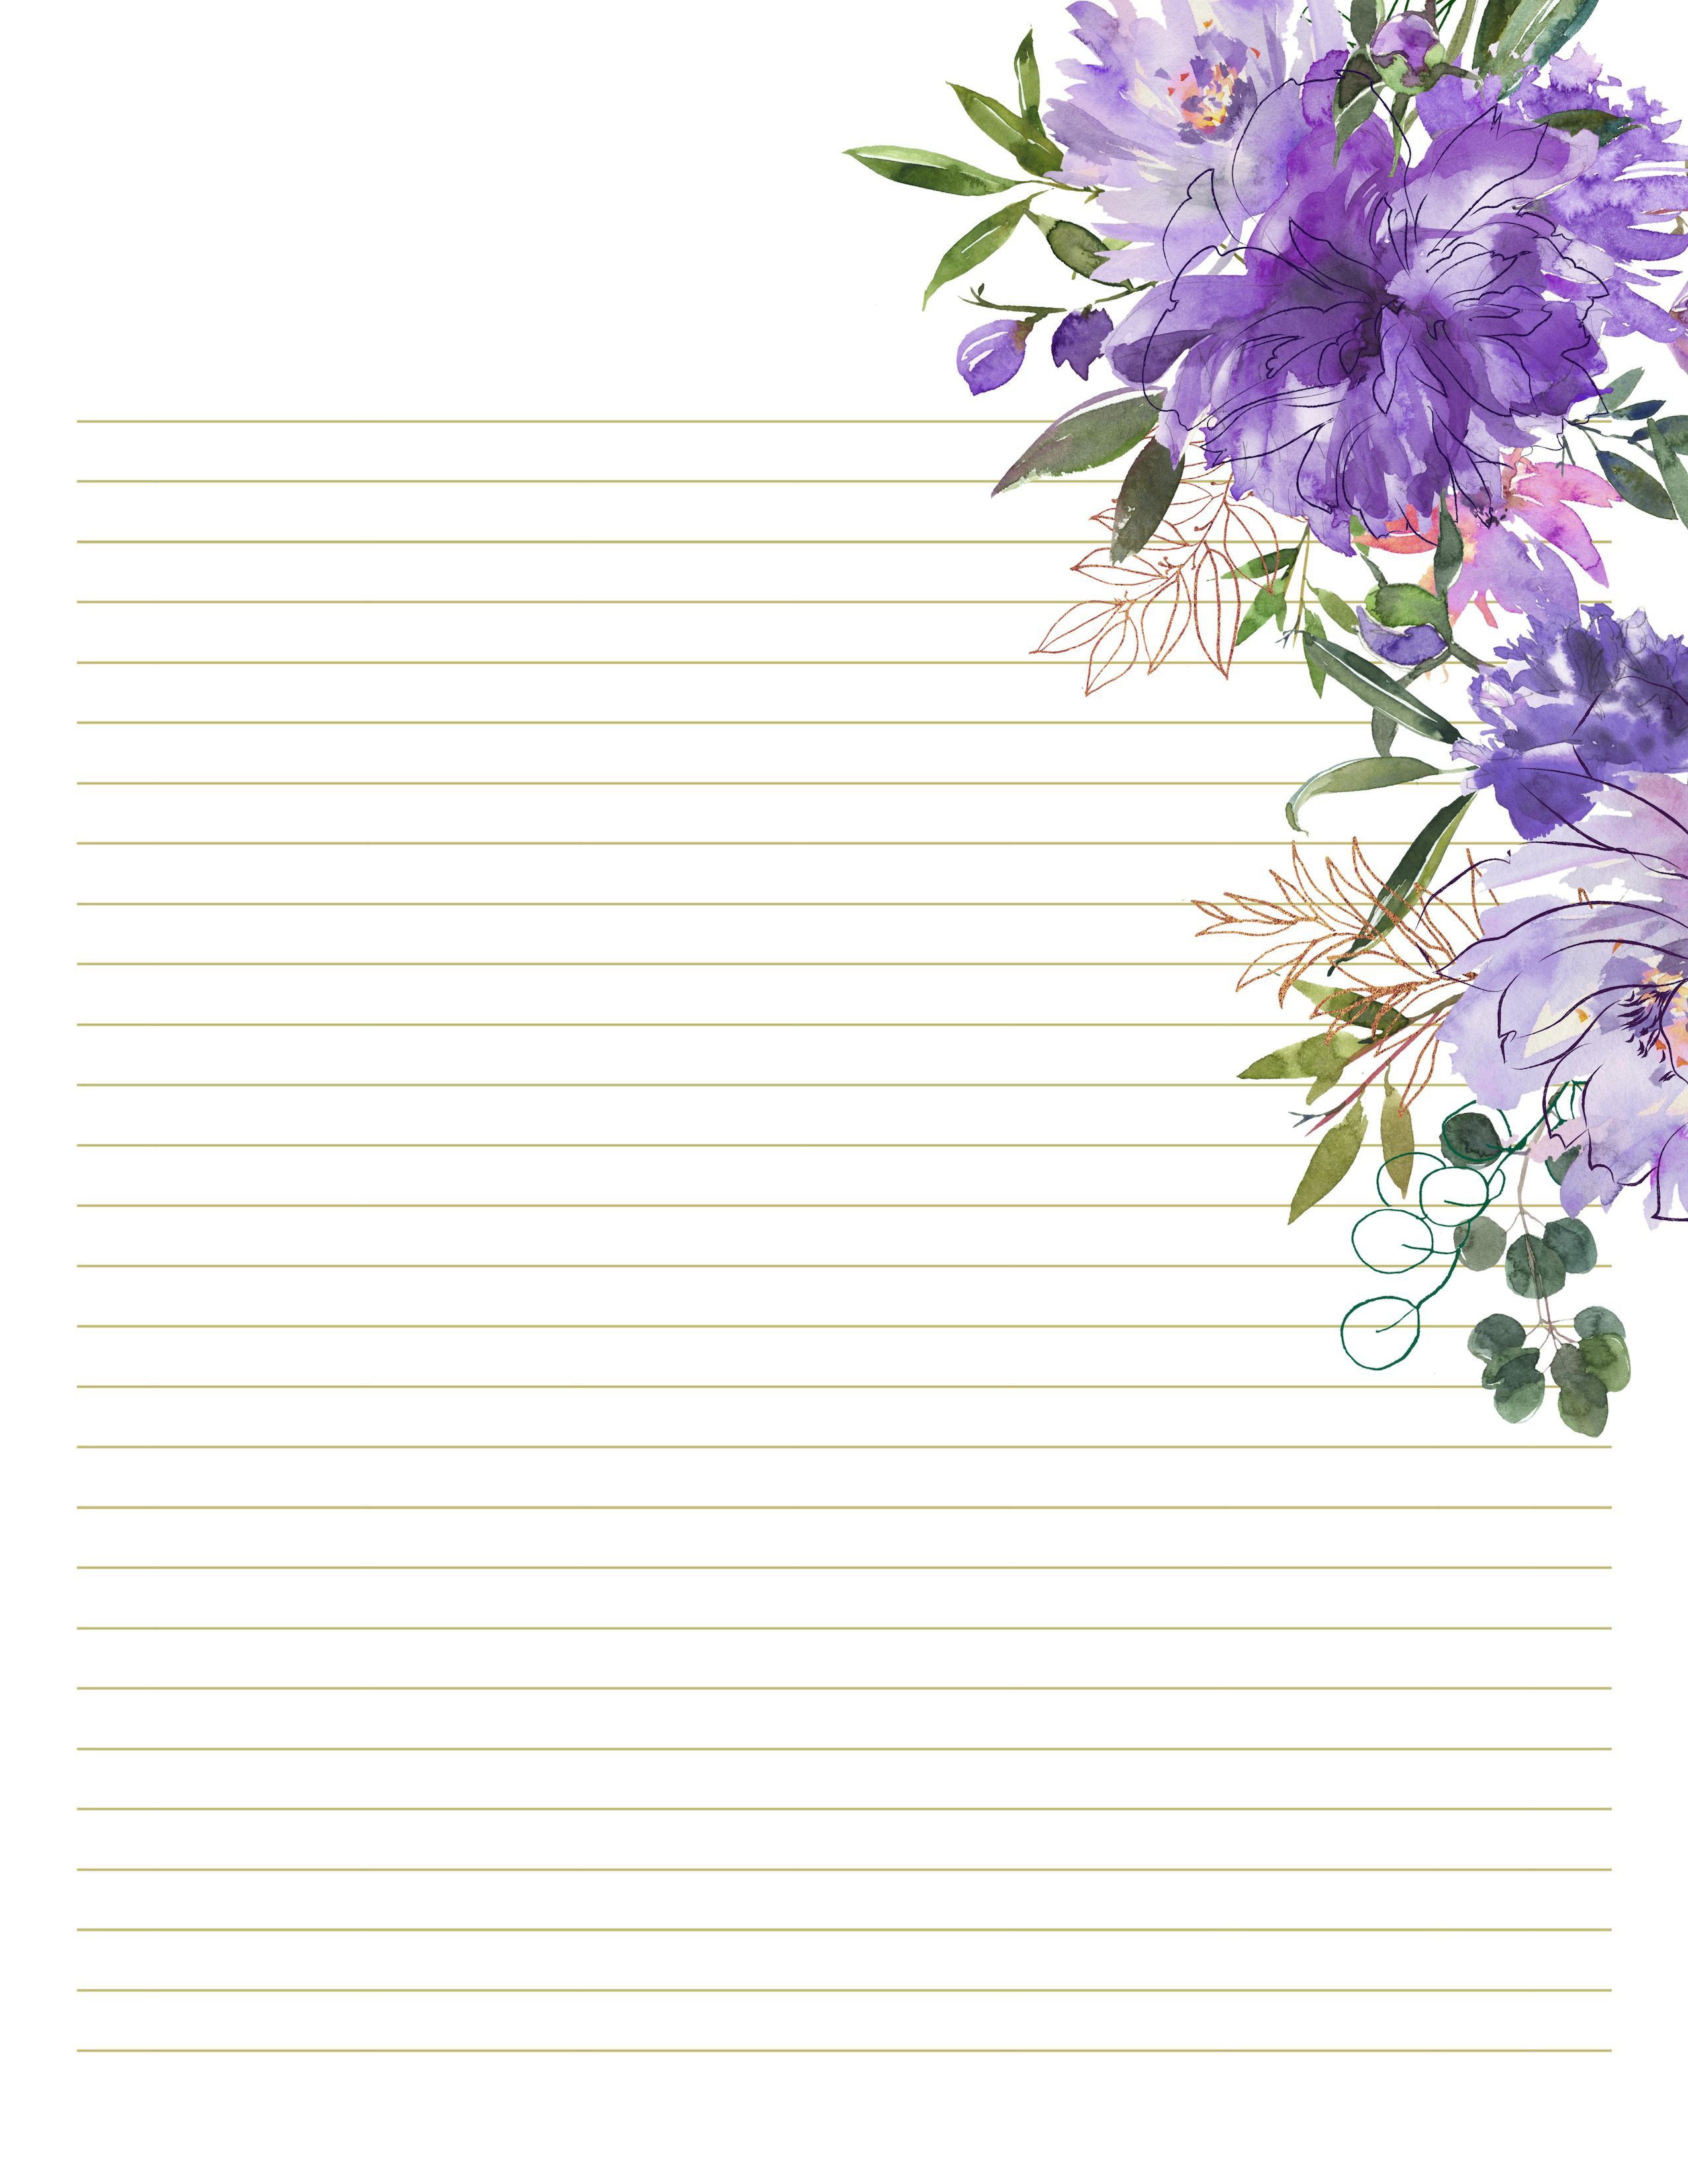 003 Formidable Free Printable Stationery Paper Template Photo  TemplatesFull